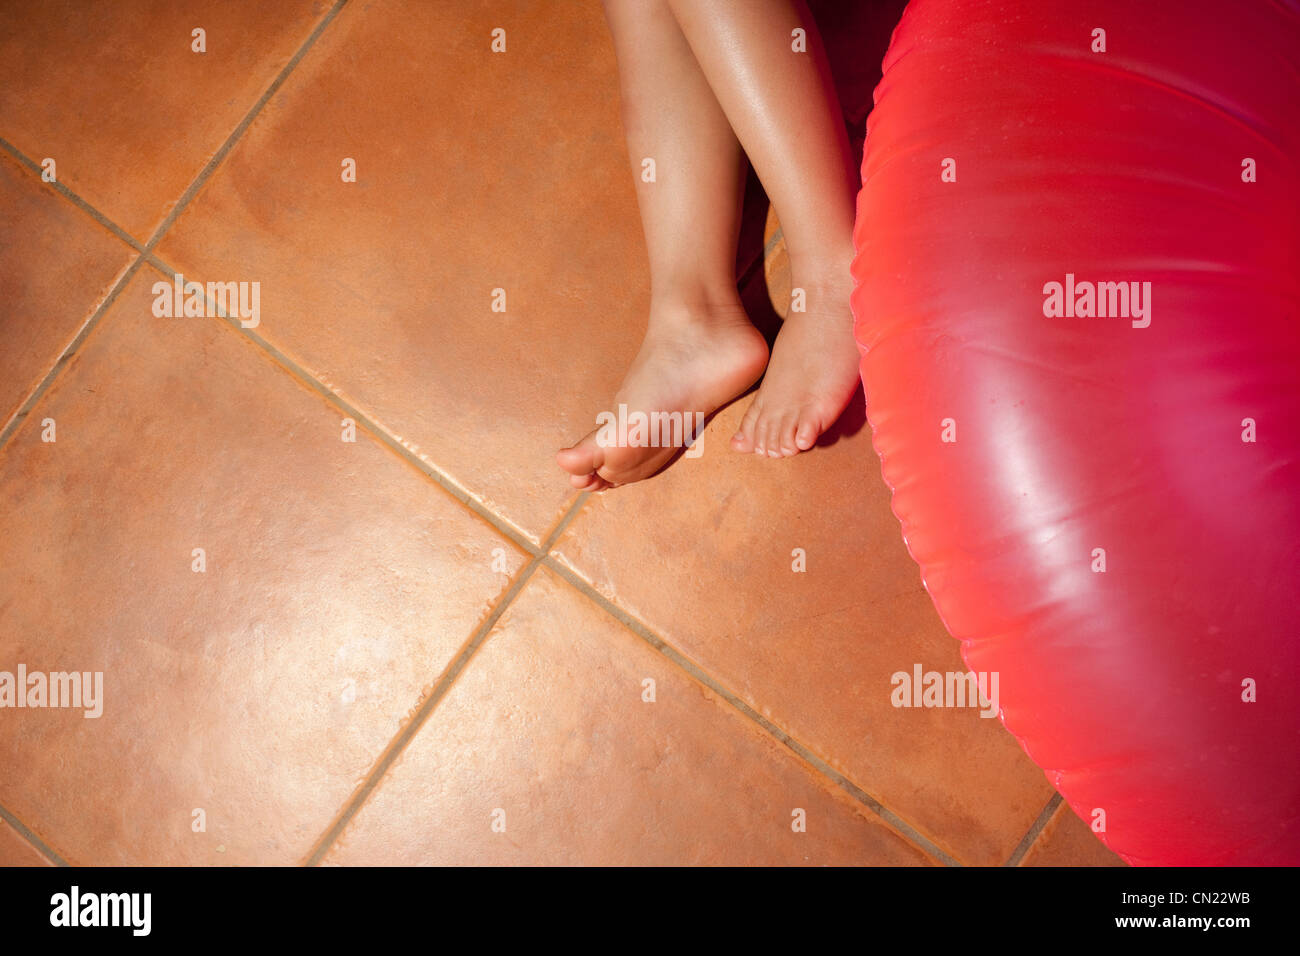 Young girl's feet and inflatable ring on tiled floor - Stock Image